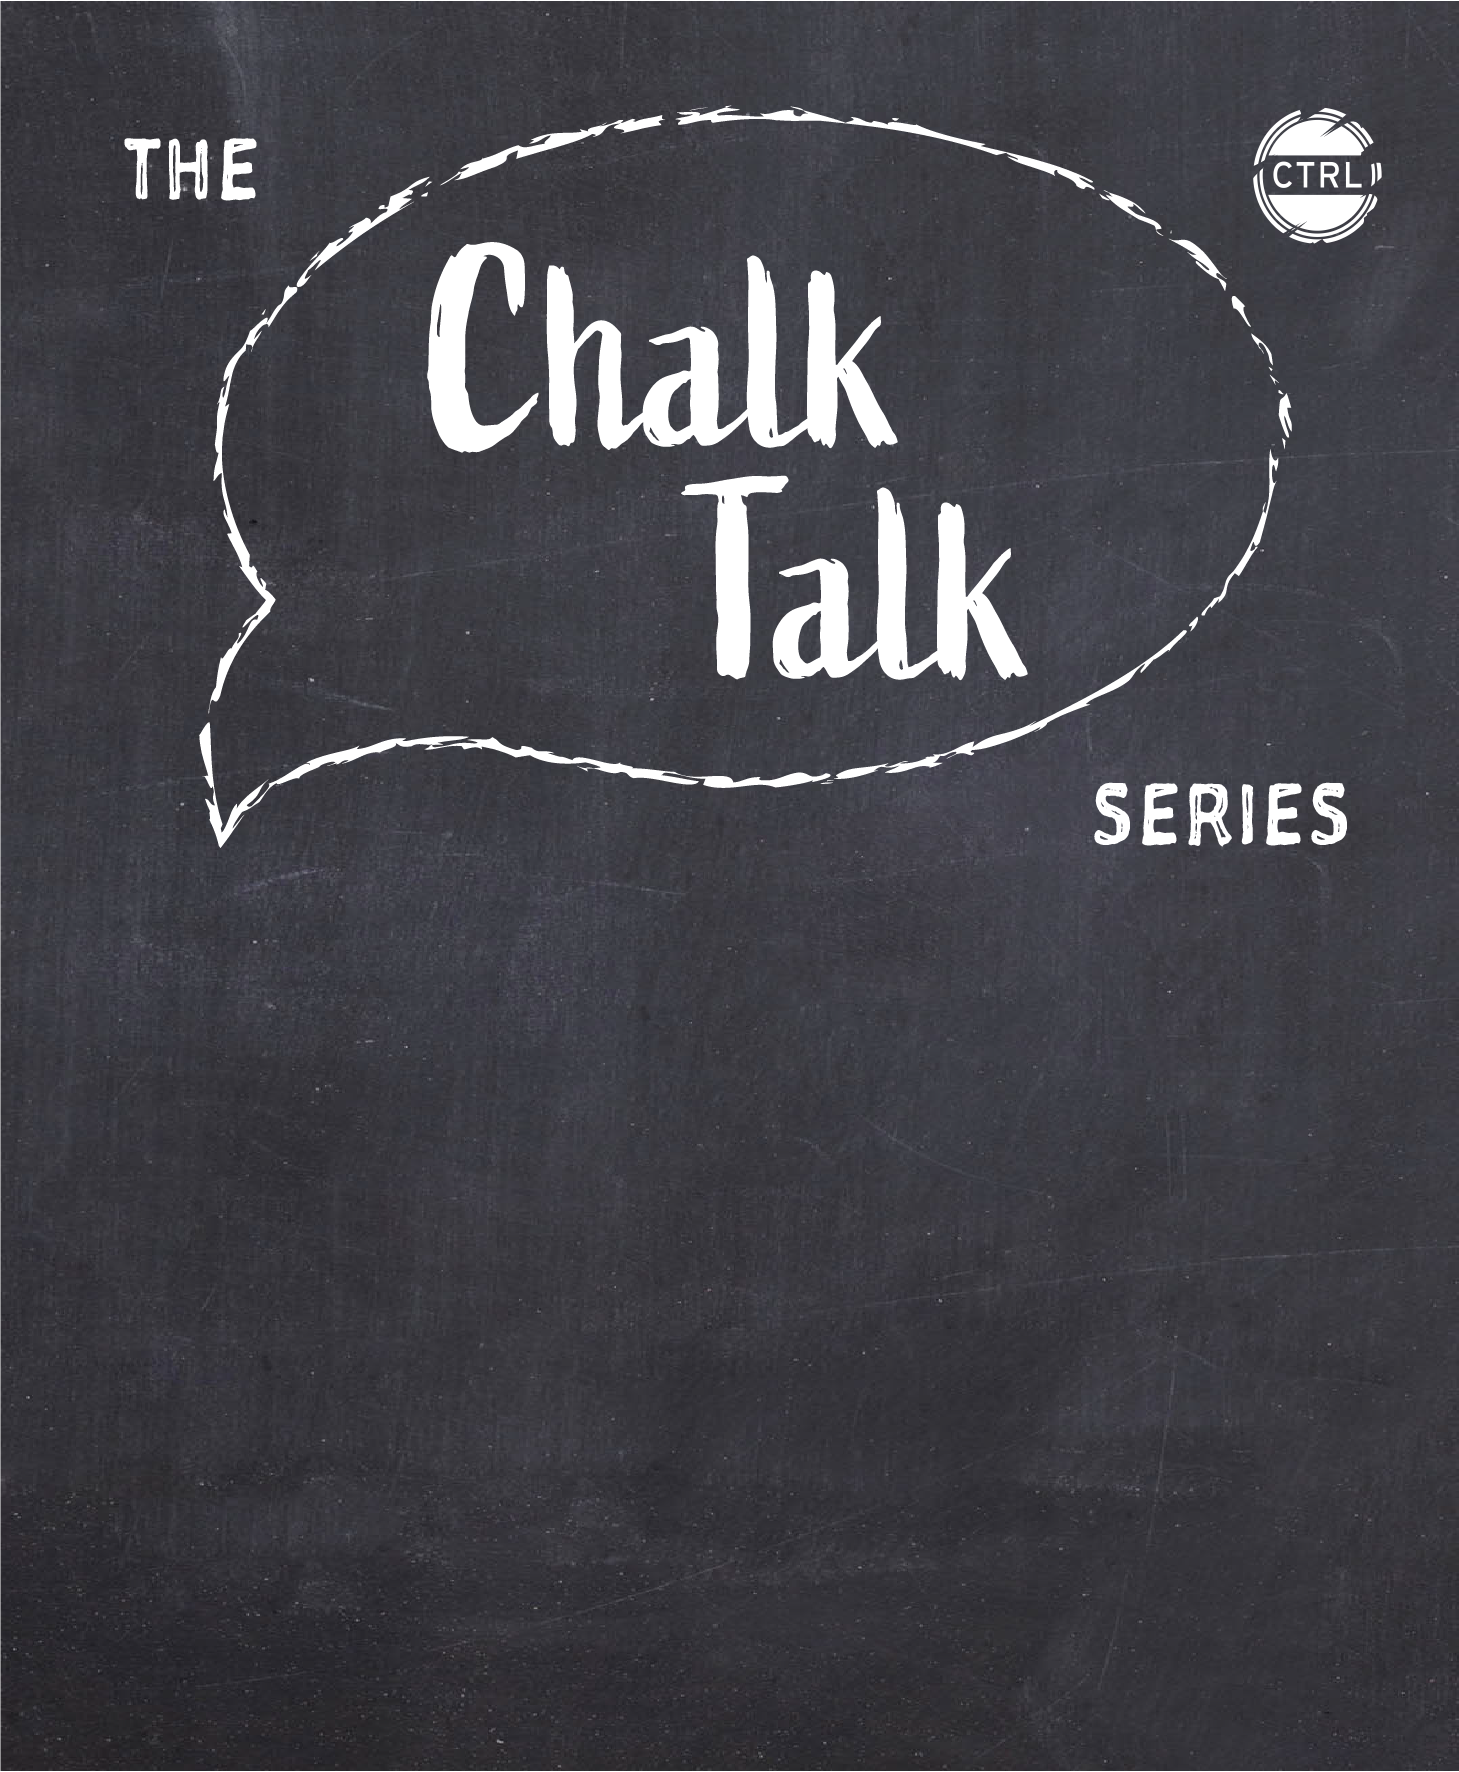 Chalk talk series